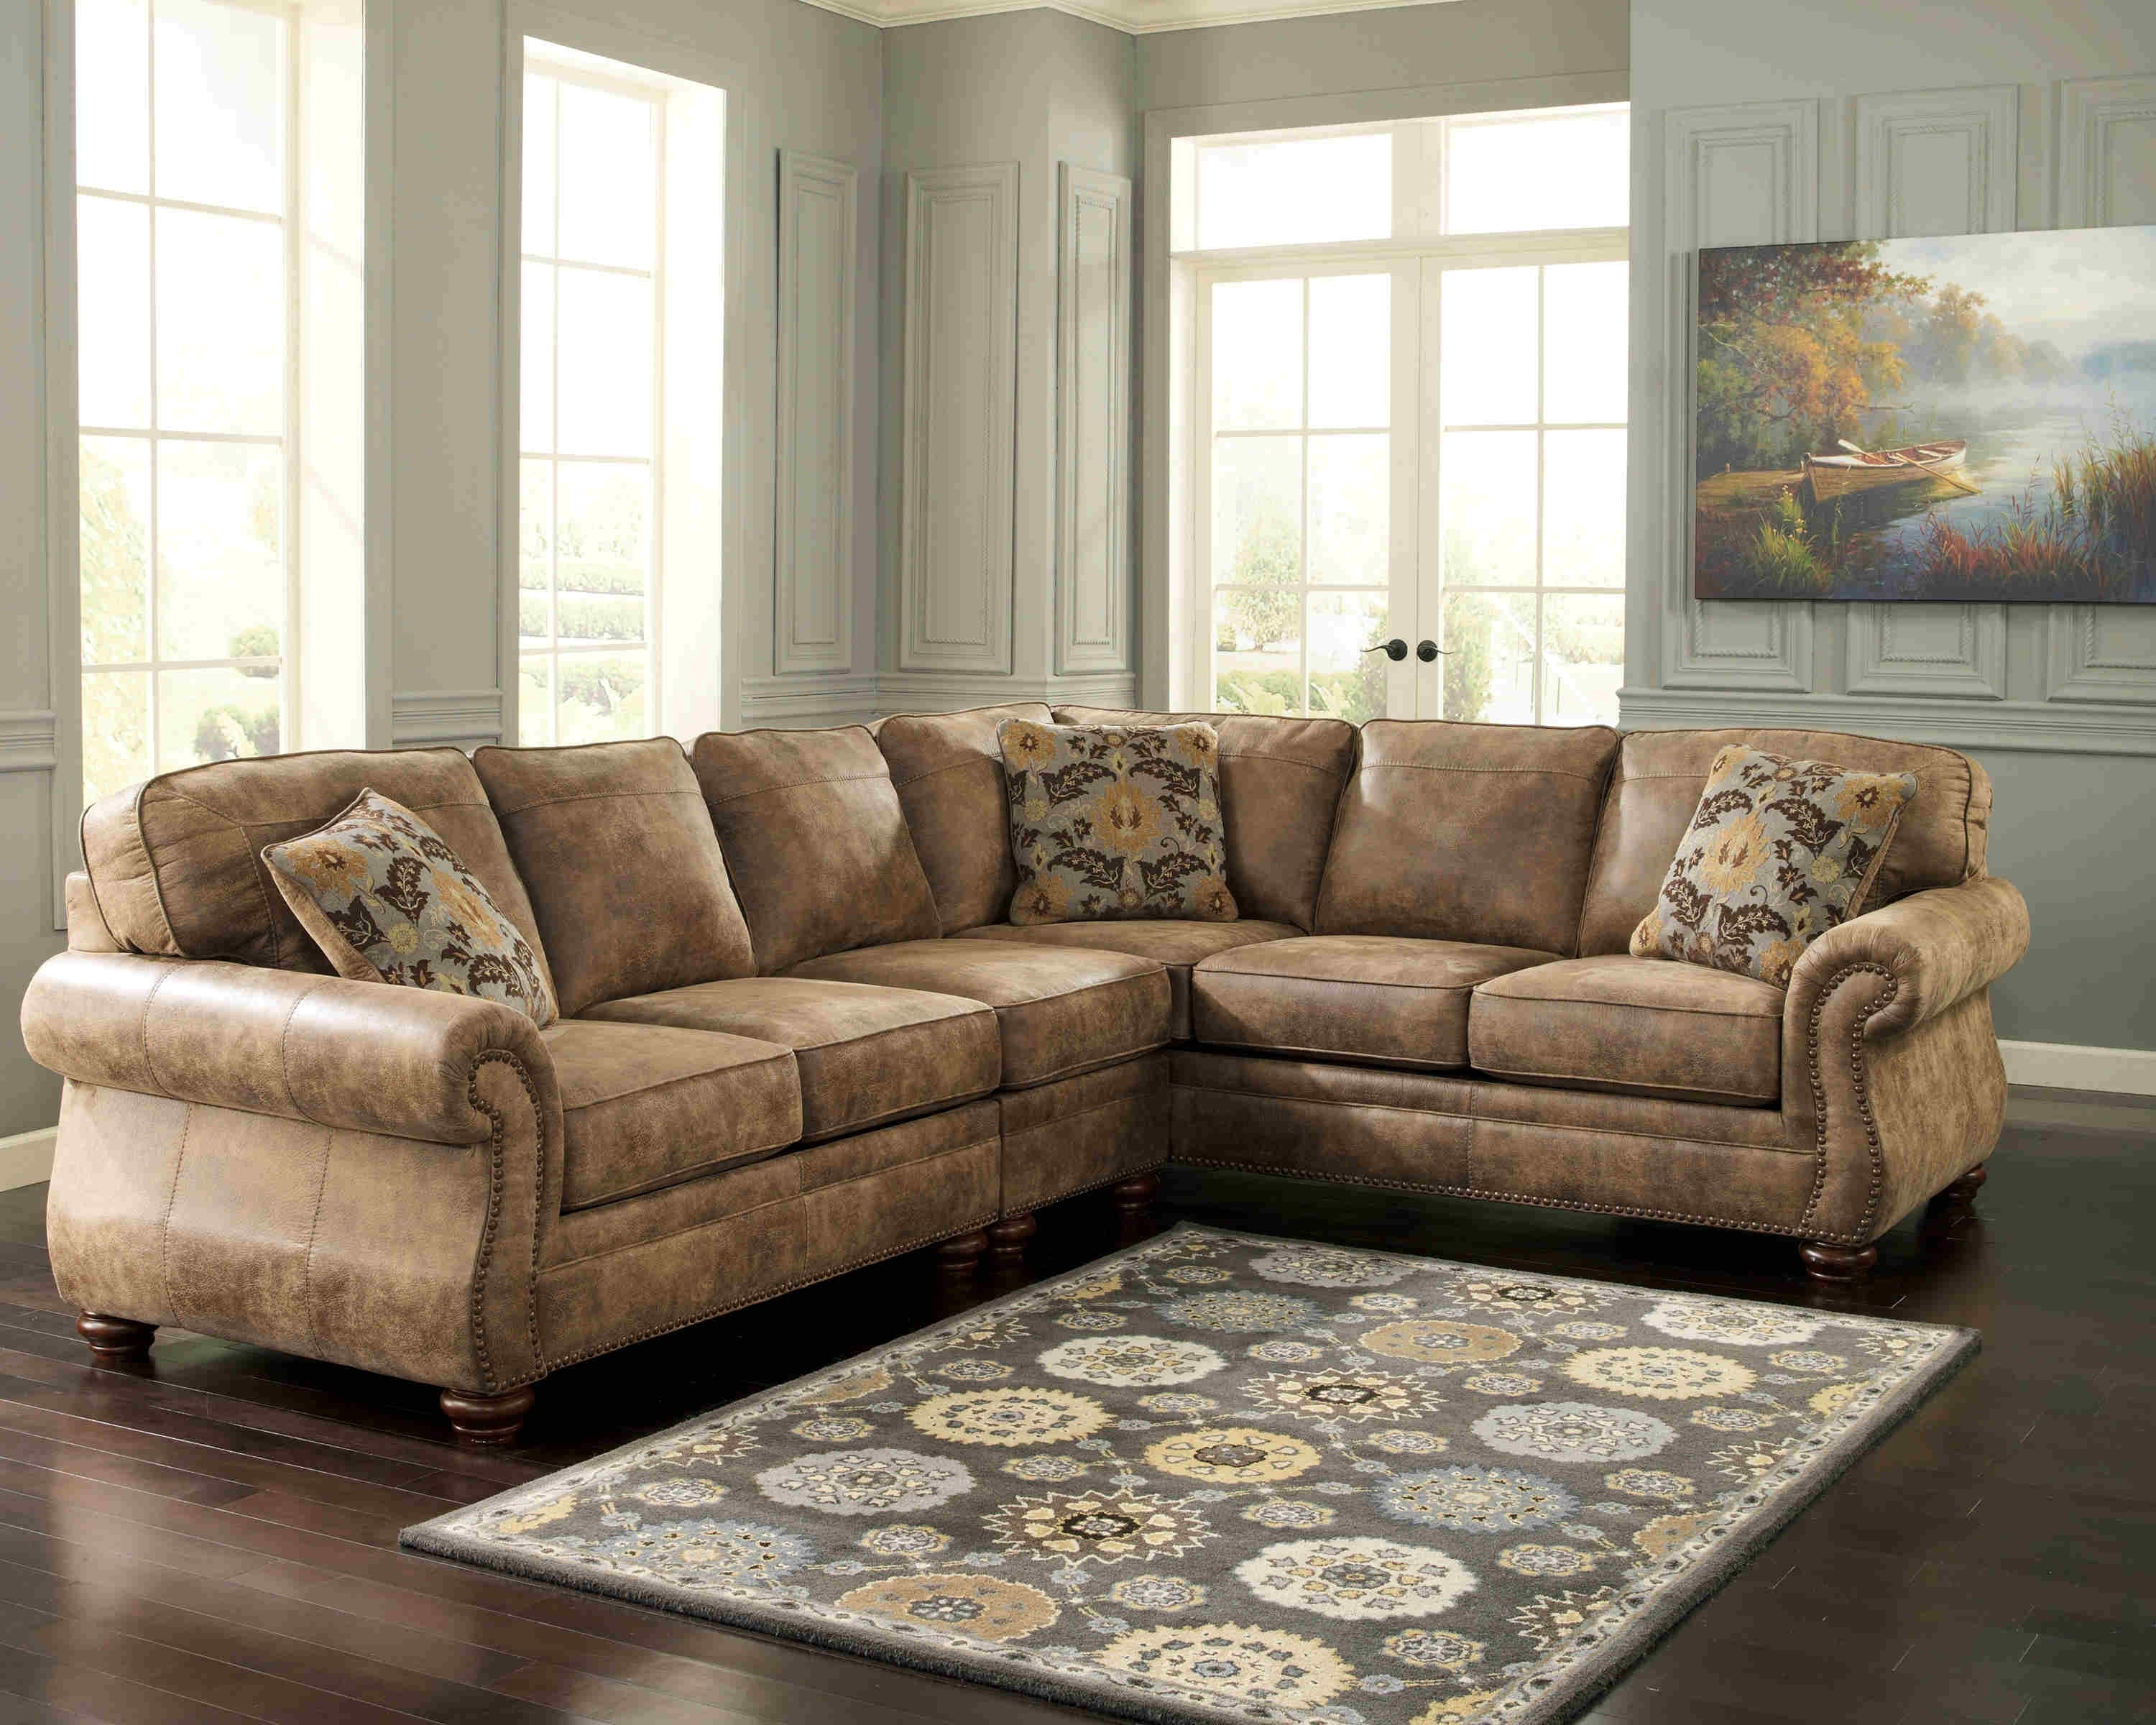 Popular Clarksville Tn Sectional Sofas Pertaining To Furniture: American Freight Columbus Ohio (View 7 of 15)